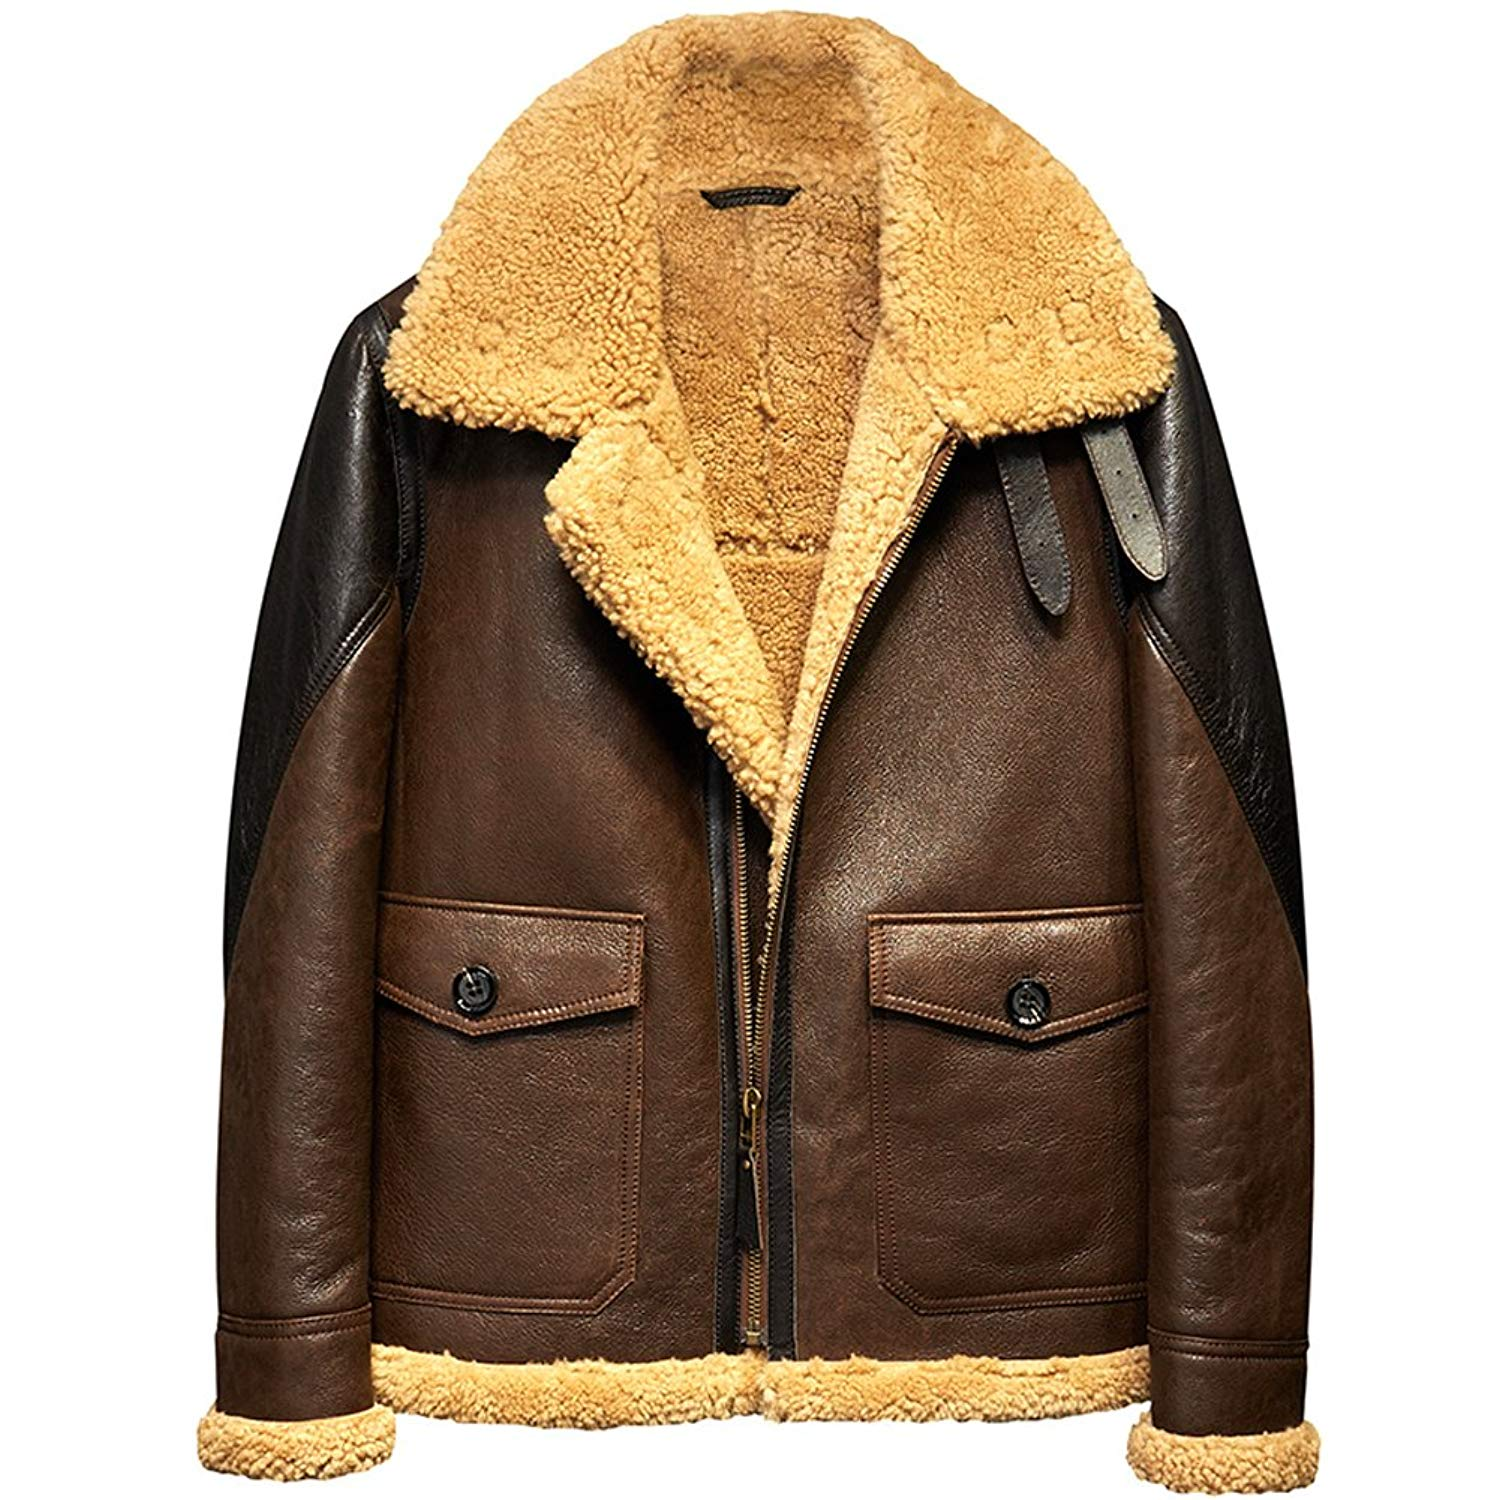 80ba6b9a0f2 Get Quotations · Light Brown B3 Men s Shearling Leather Jacket Original  Flying Jacket Men s Fur Coat Pilots Coat